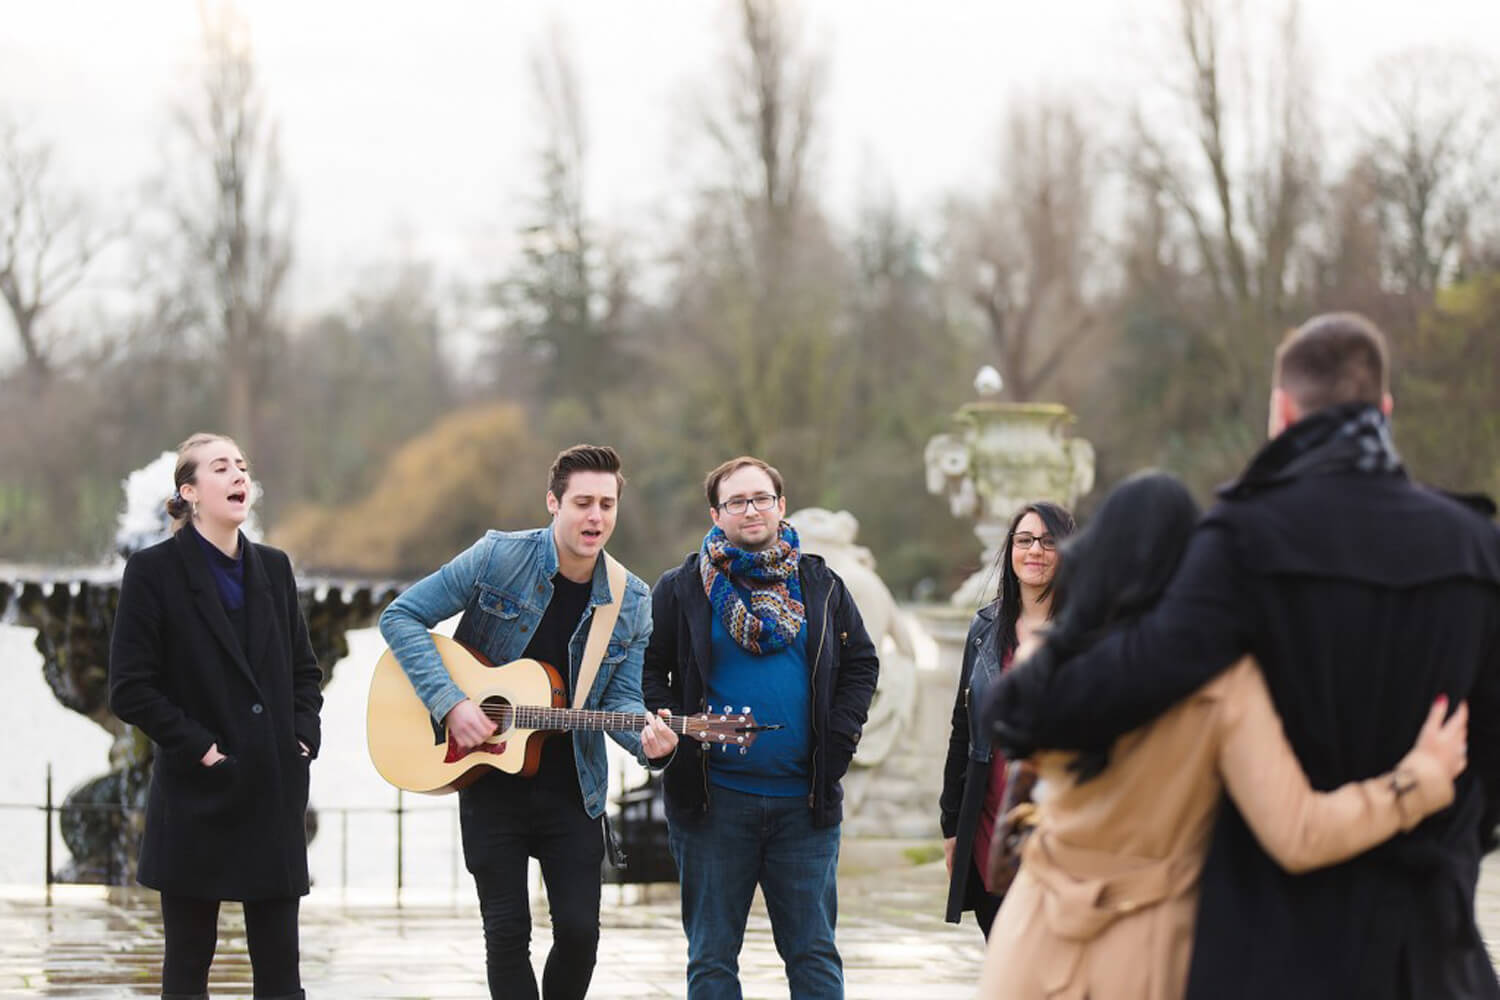 Italian Gardens | The Best Outdoor Winter Proposal Ideas In London